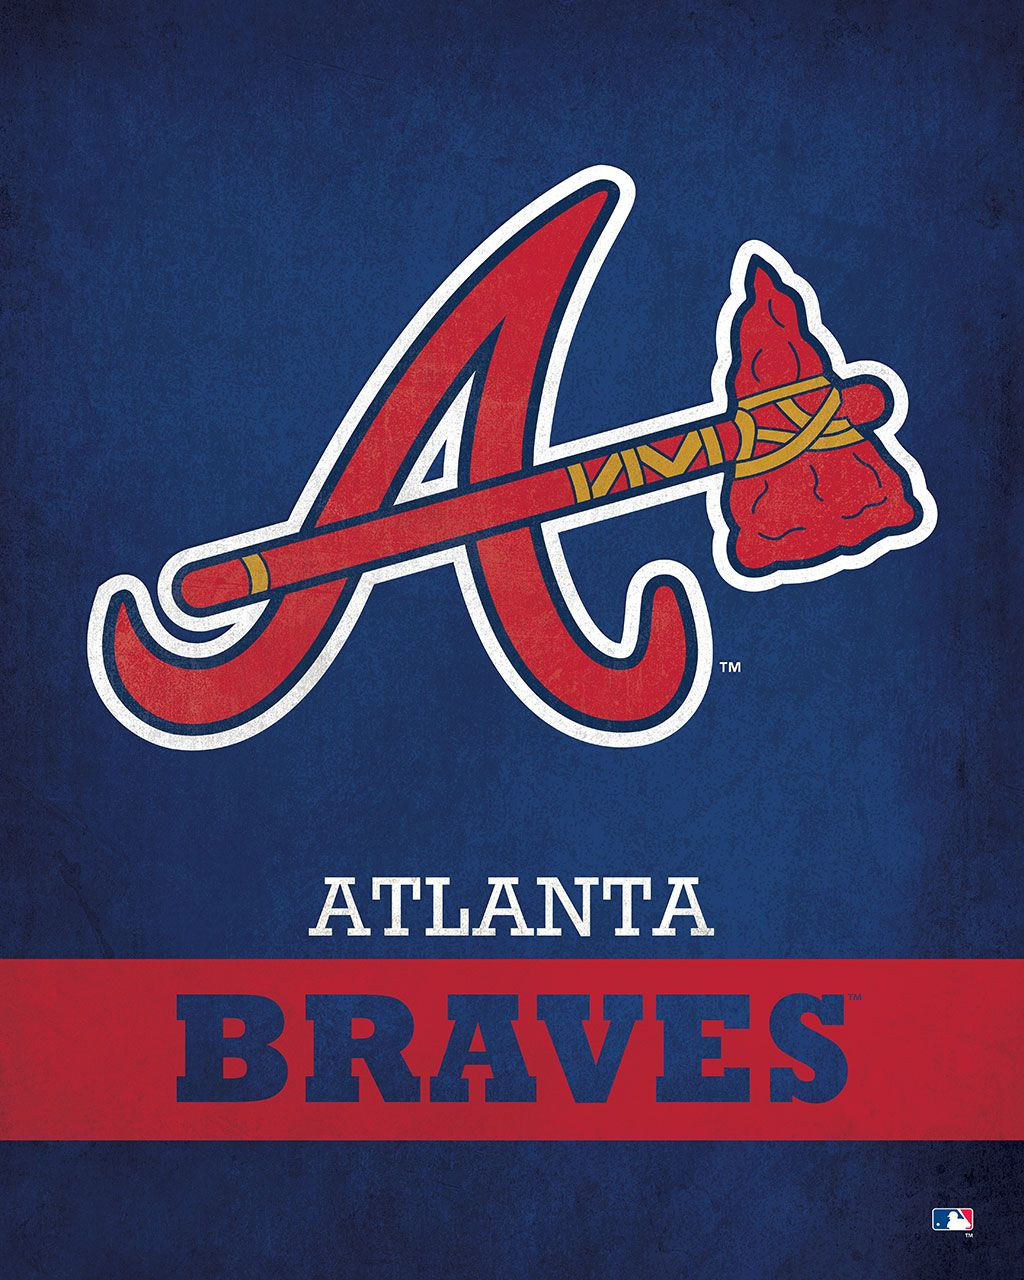 Atlanta Braves Logo 24 99 Atlanta Braves Logo Atlanta Braves Braves